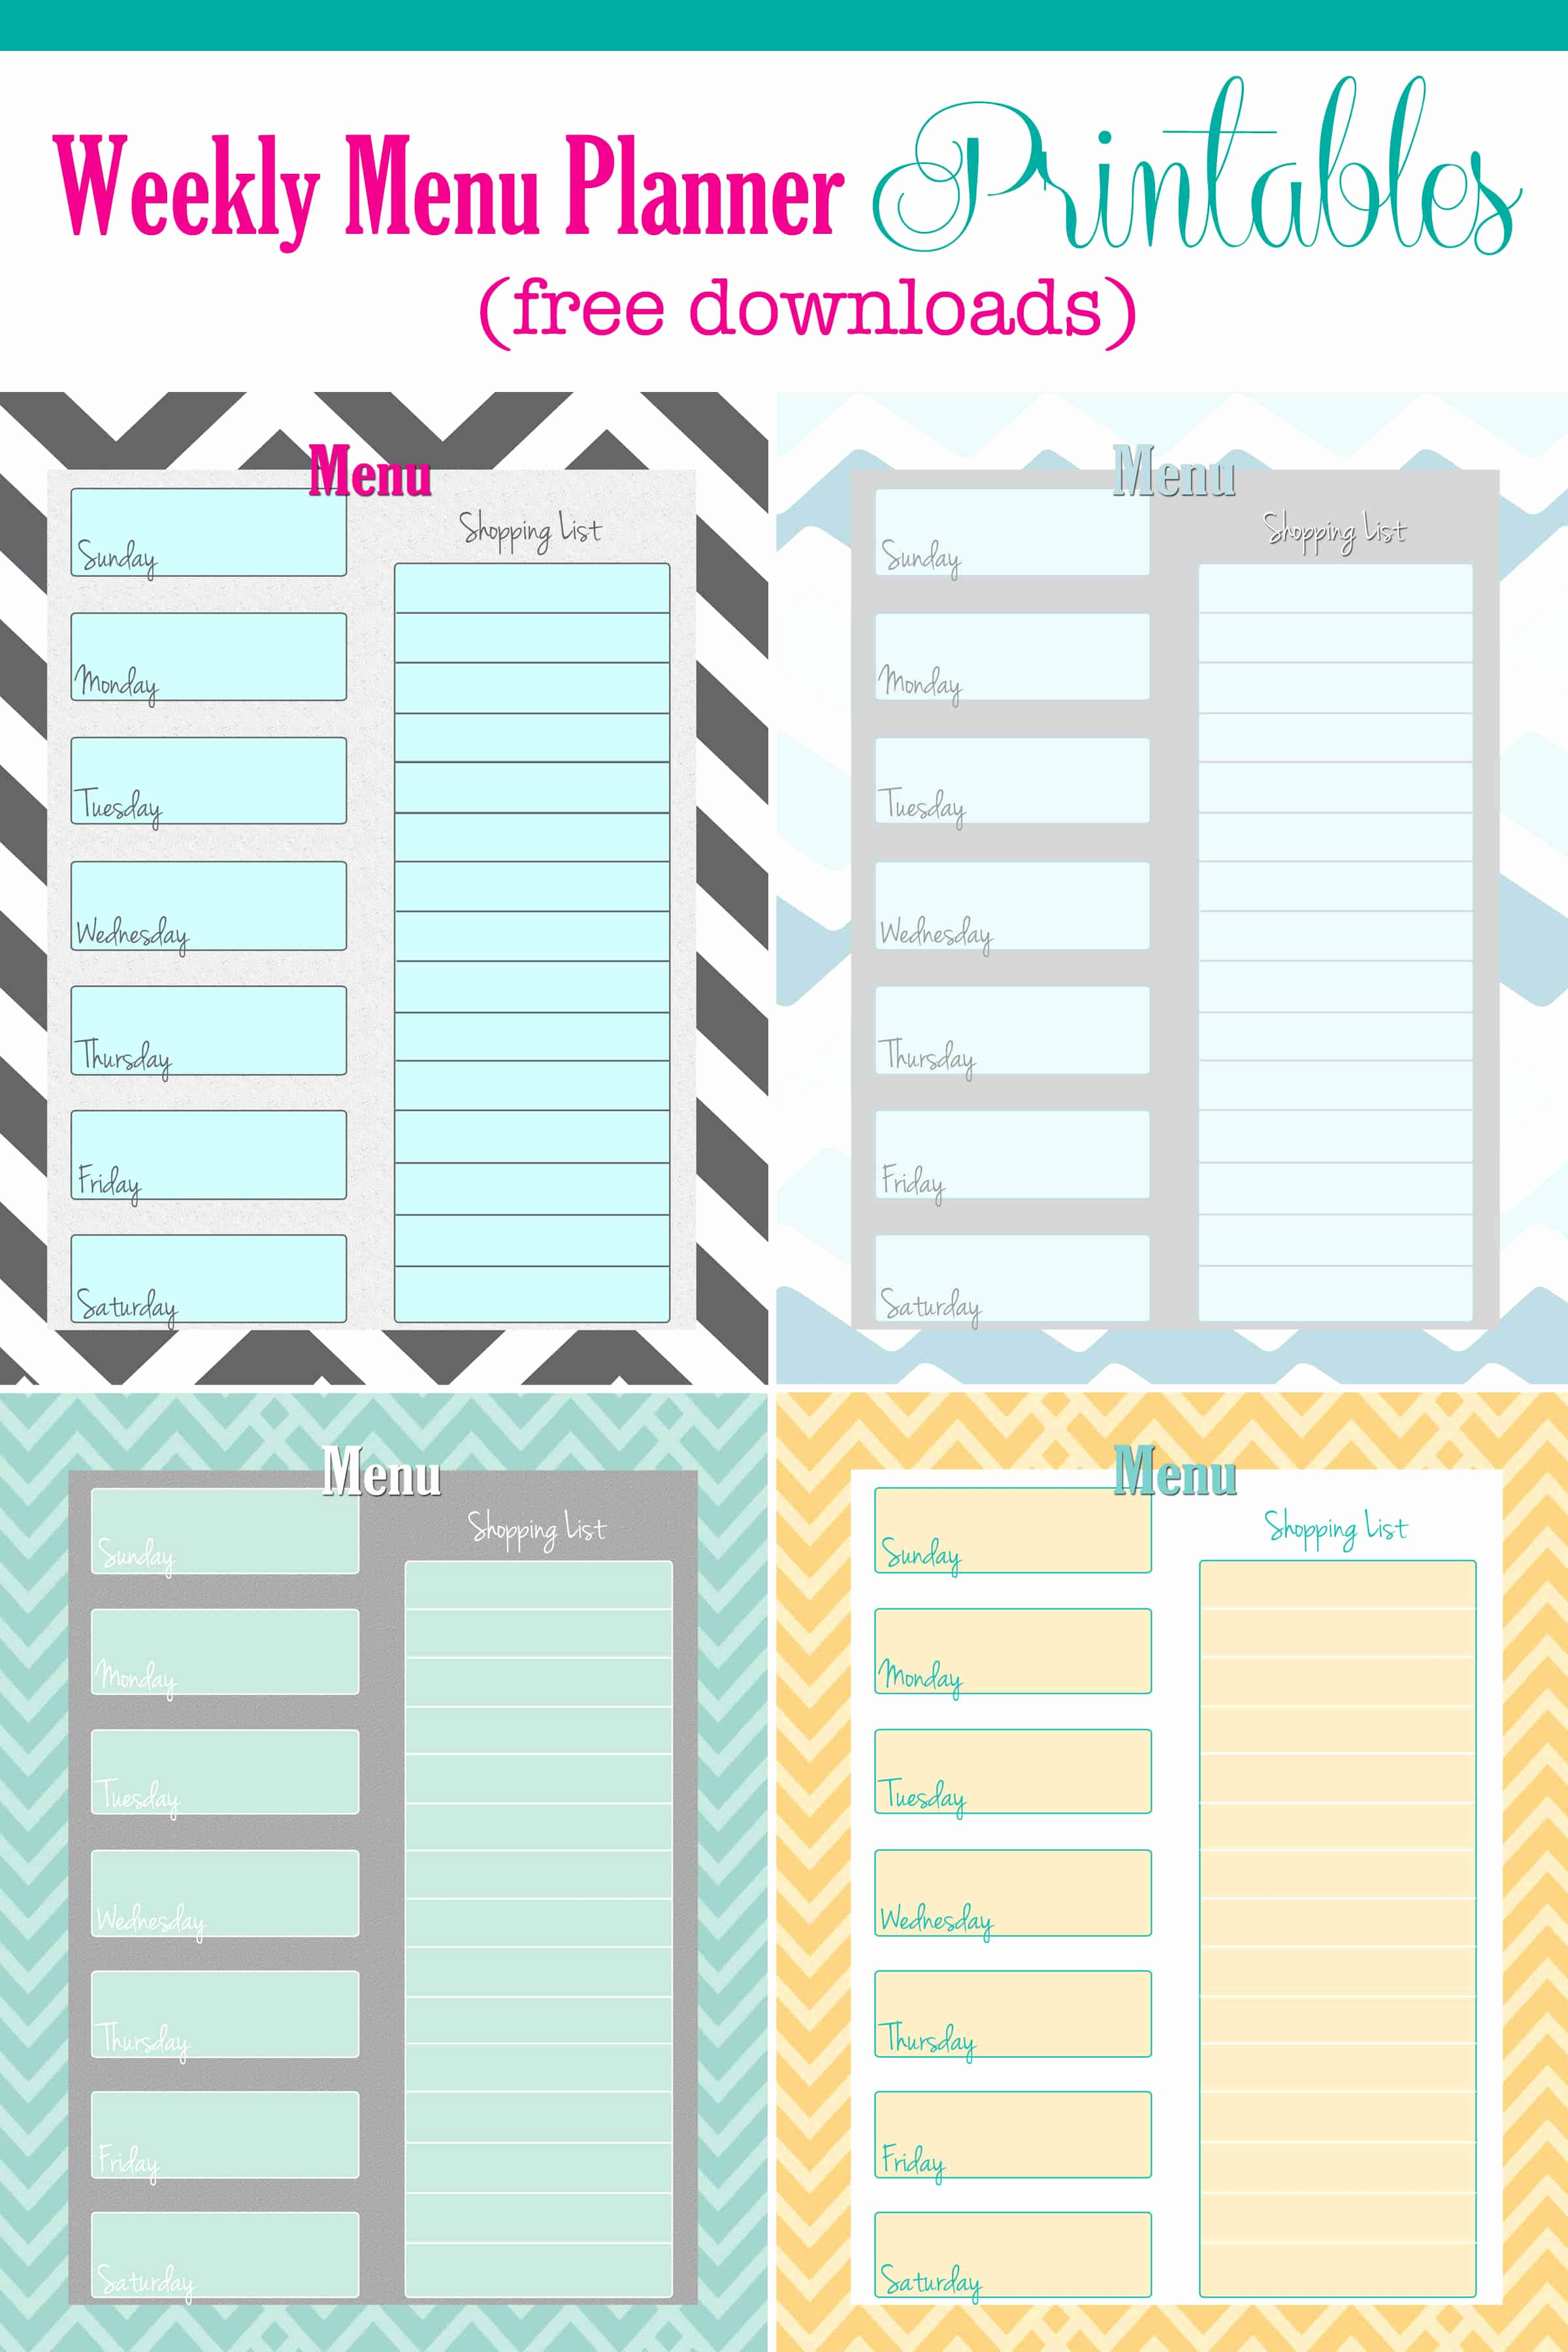 Printable Weekly Planner Template Awesome Free Weekly Menu Planner Printable 4 Colors Cupcake